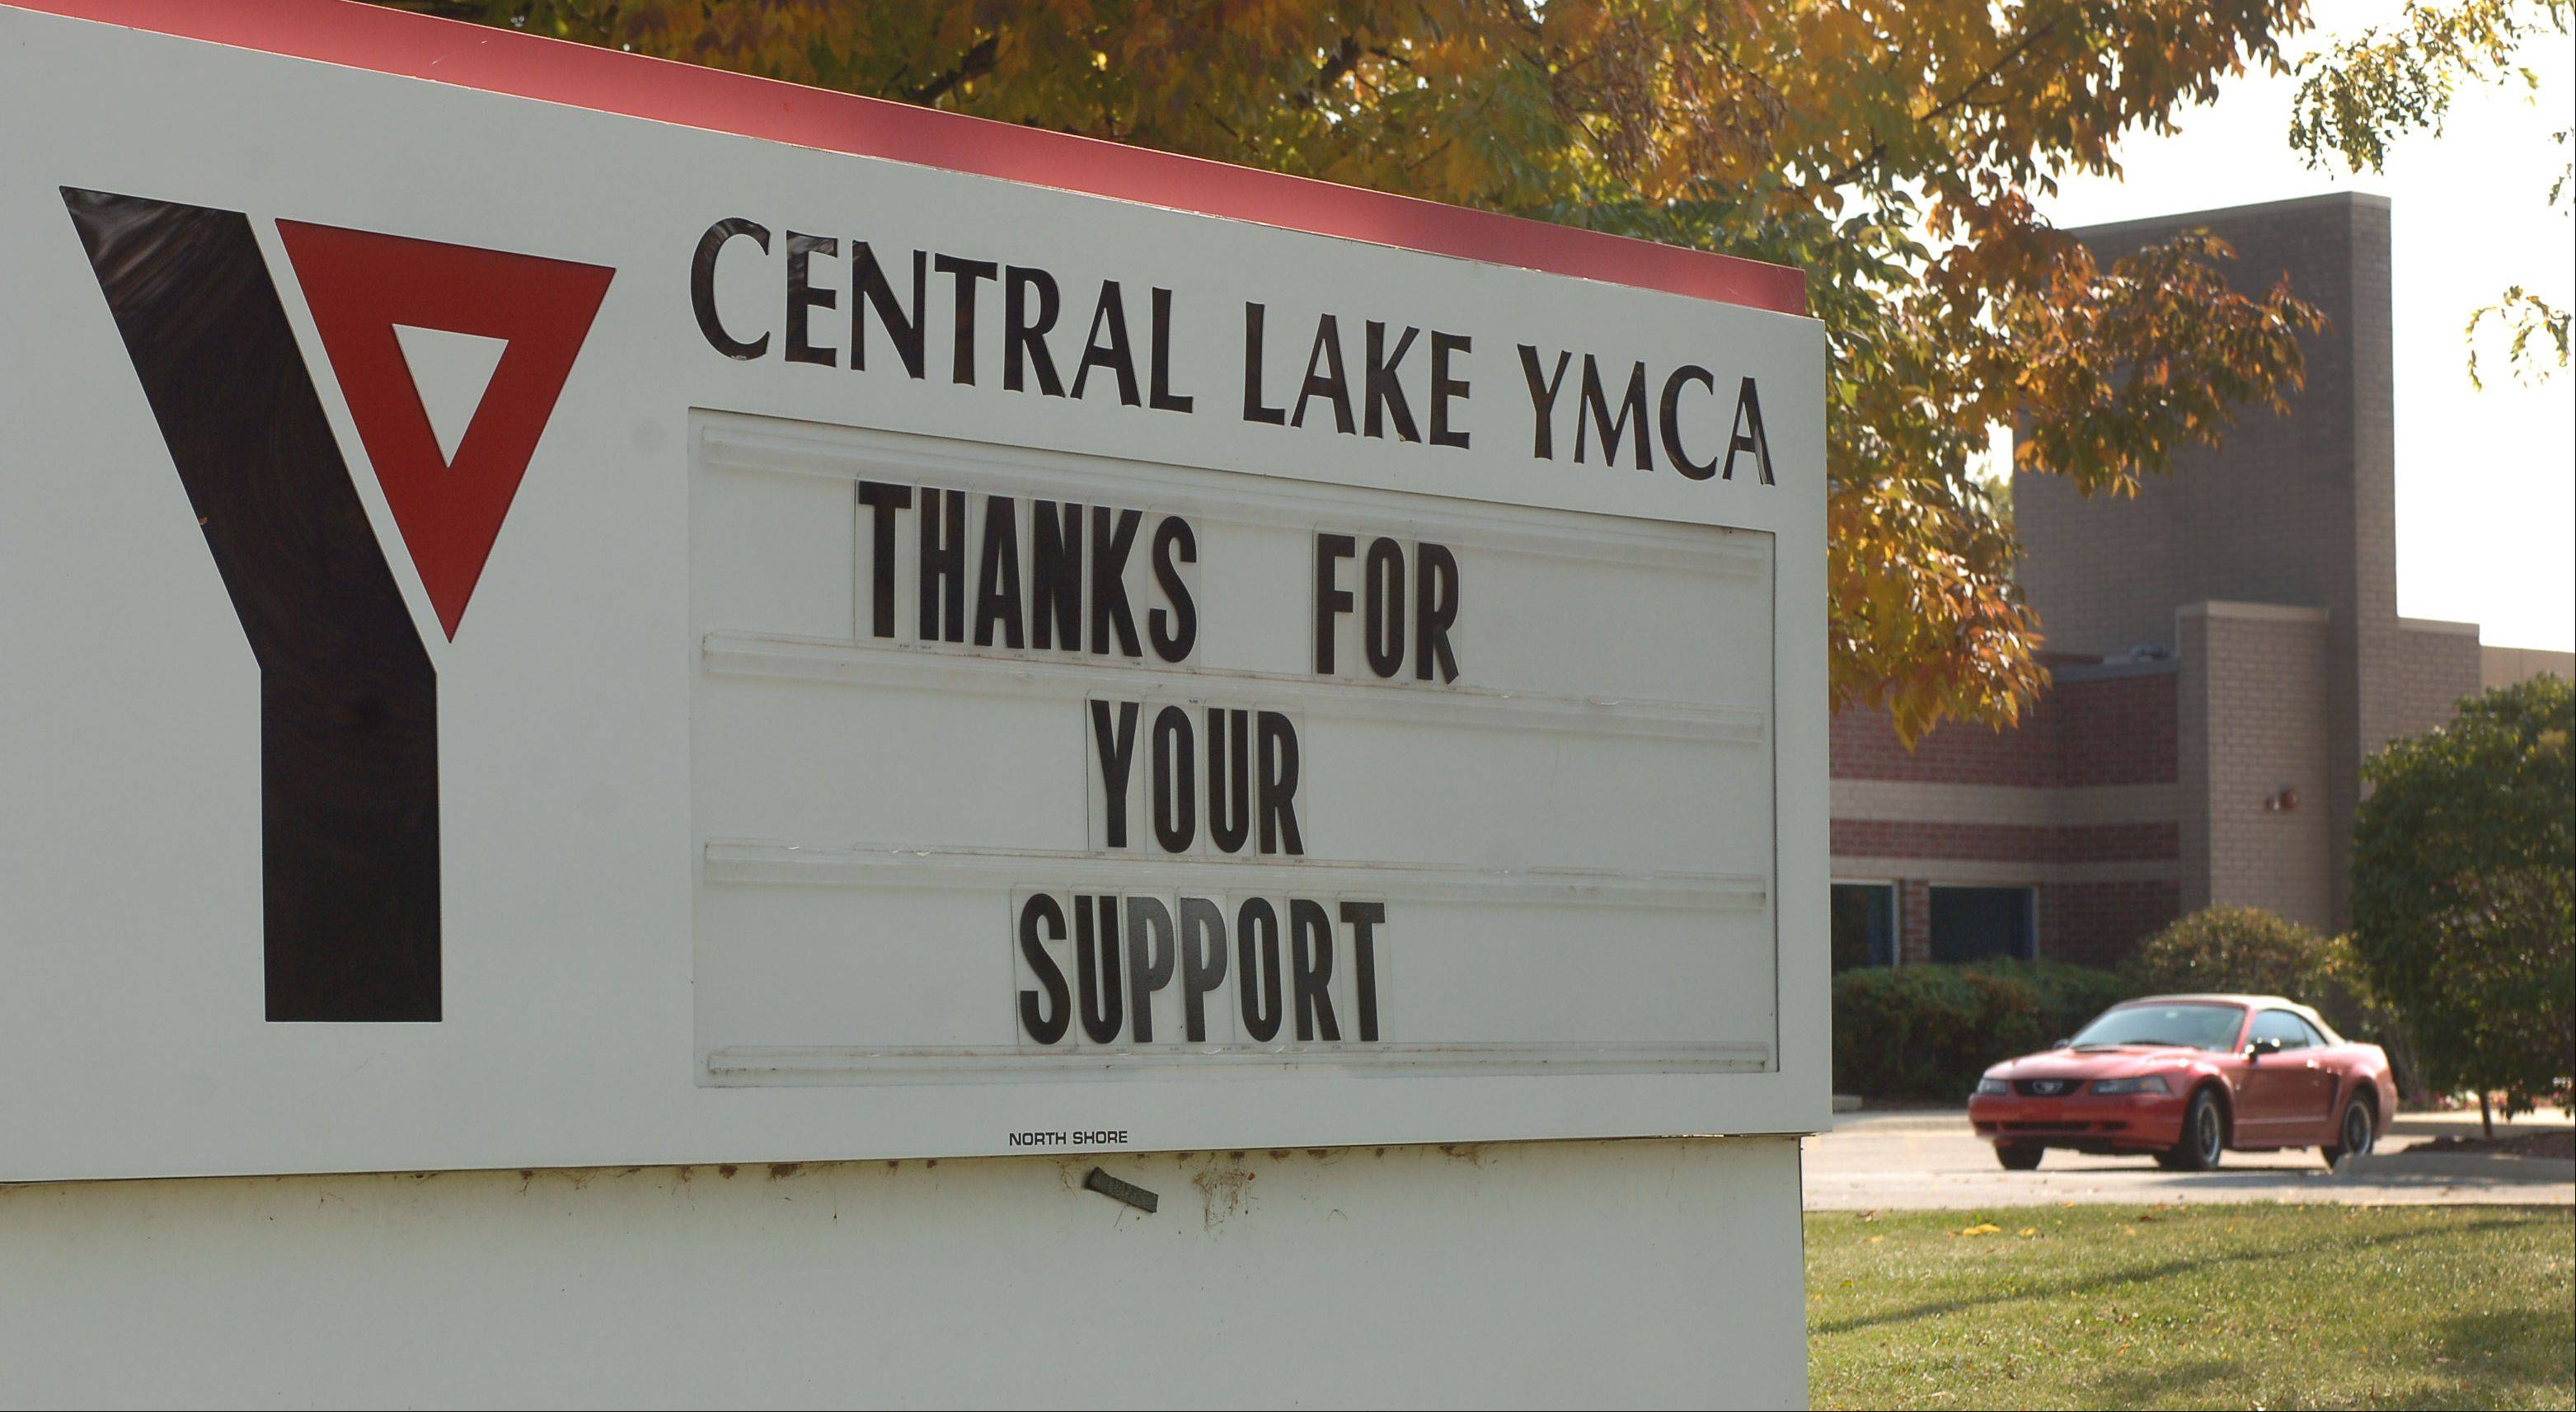 The eulogies being written for the Central Lake YMCA in Vernon Hills may be premature if local officials can figure out a way to save it.